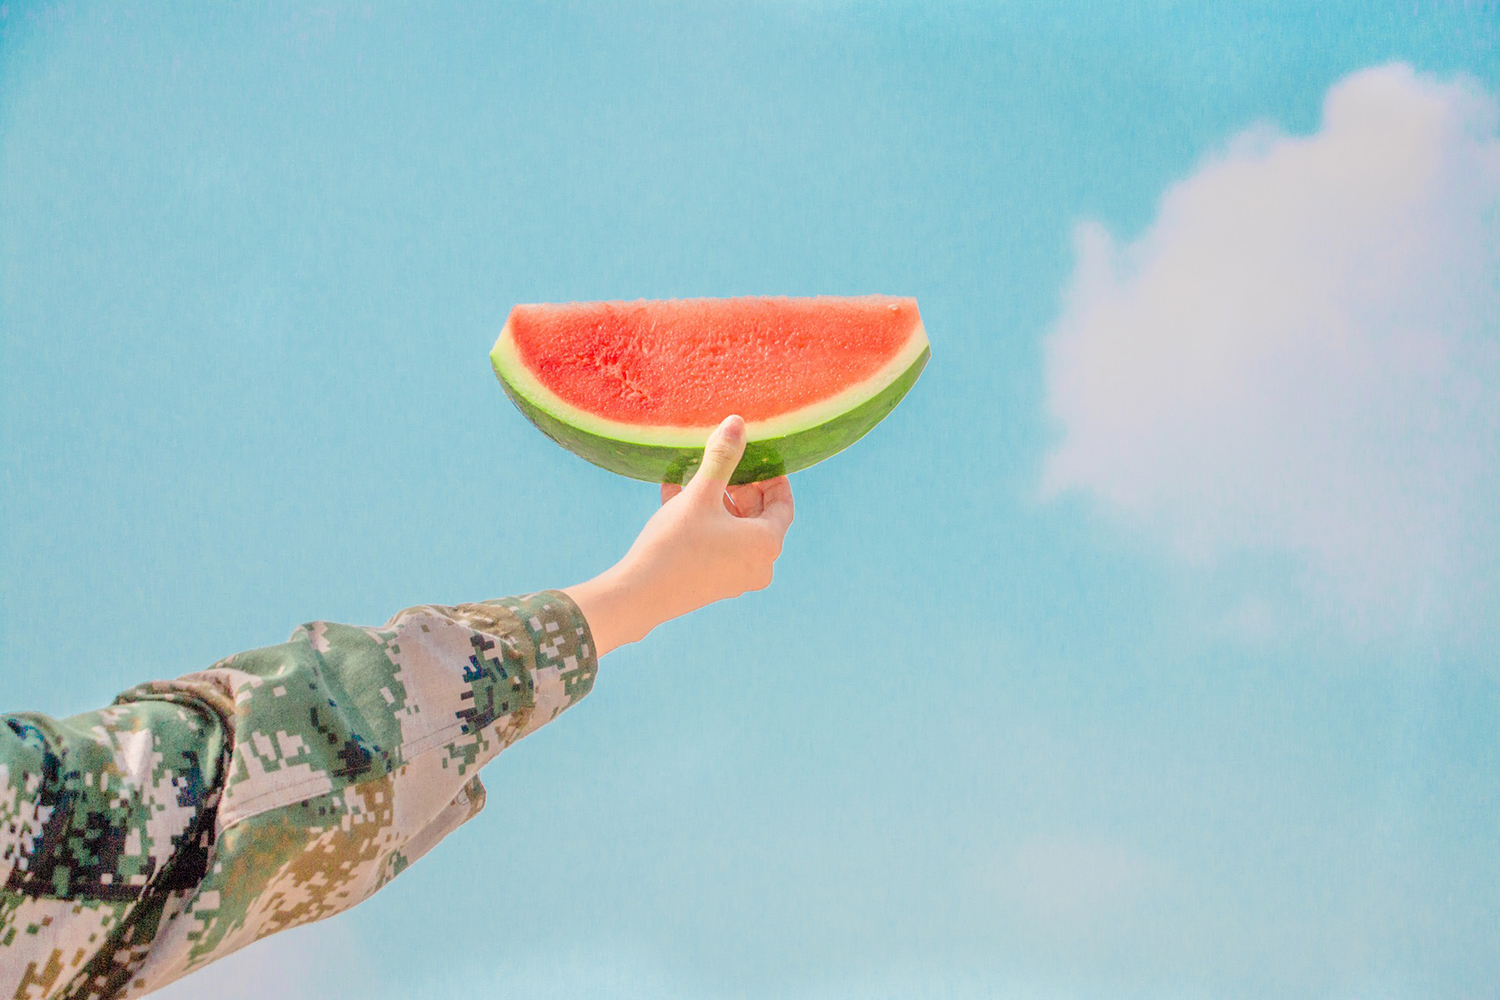 Hand Holding Watermelon Slice Outdoors